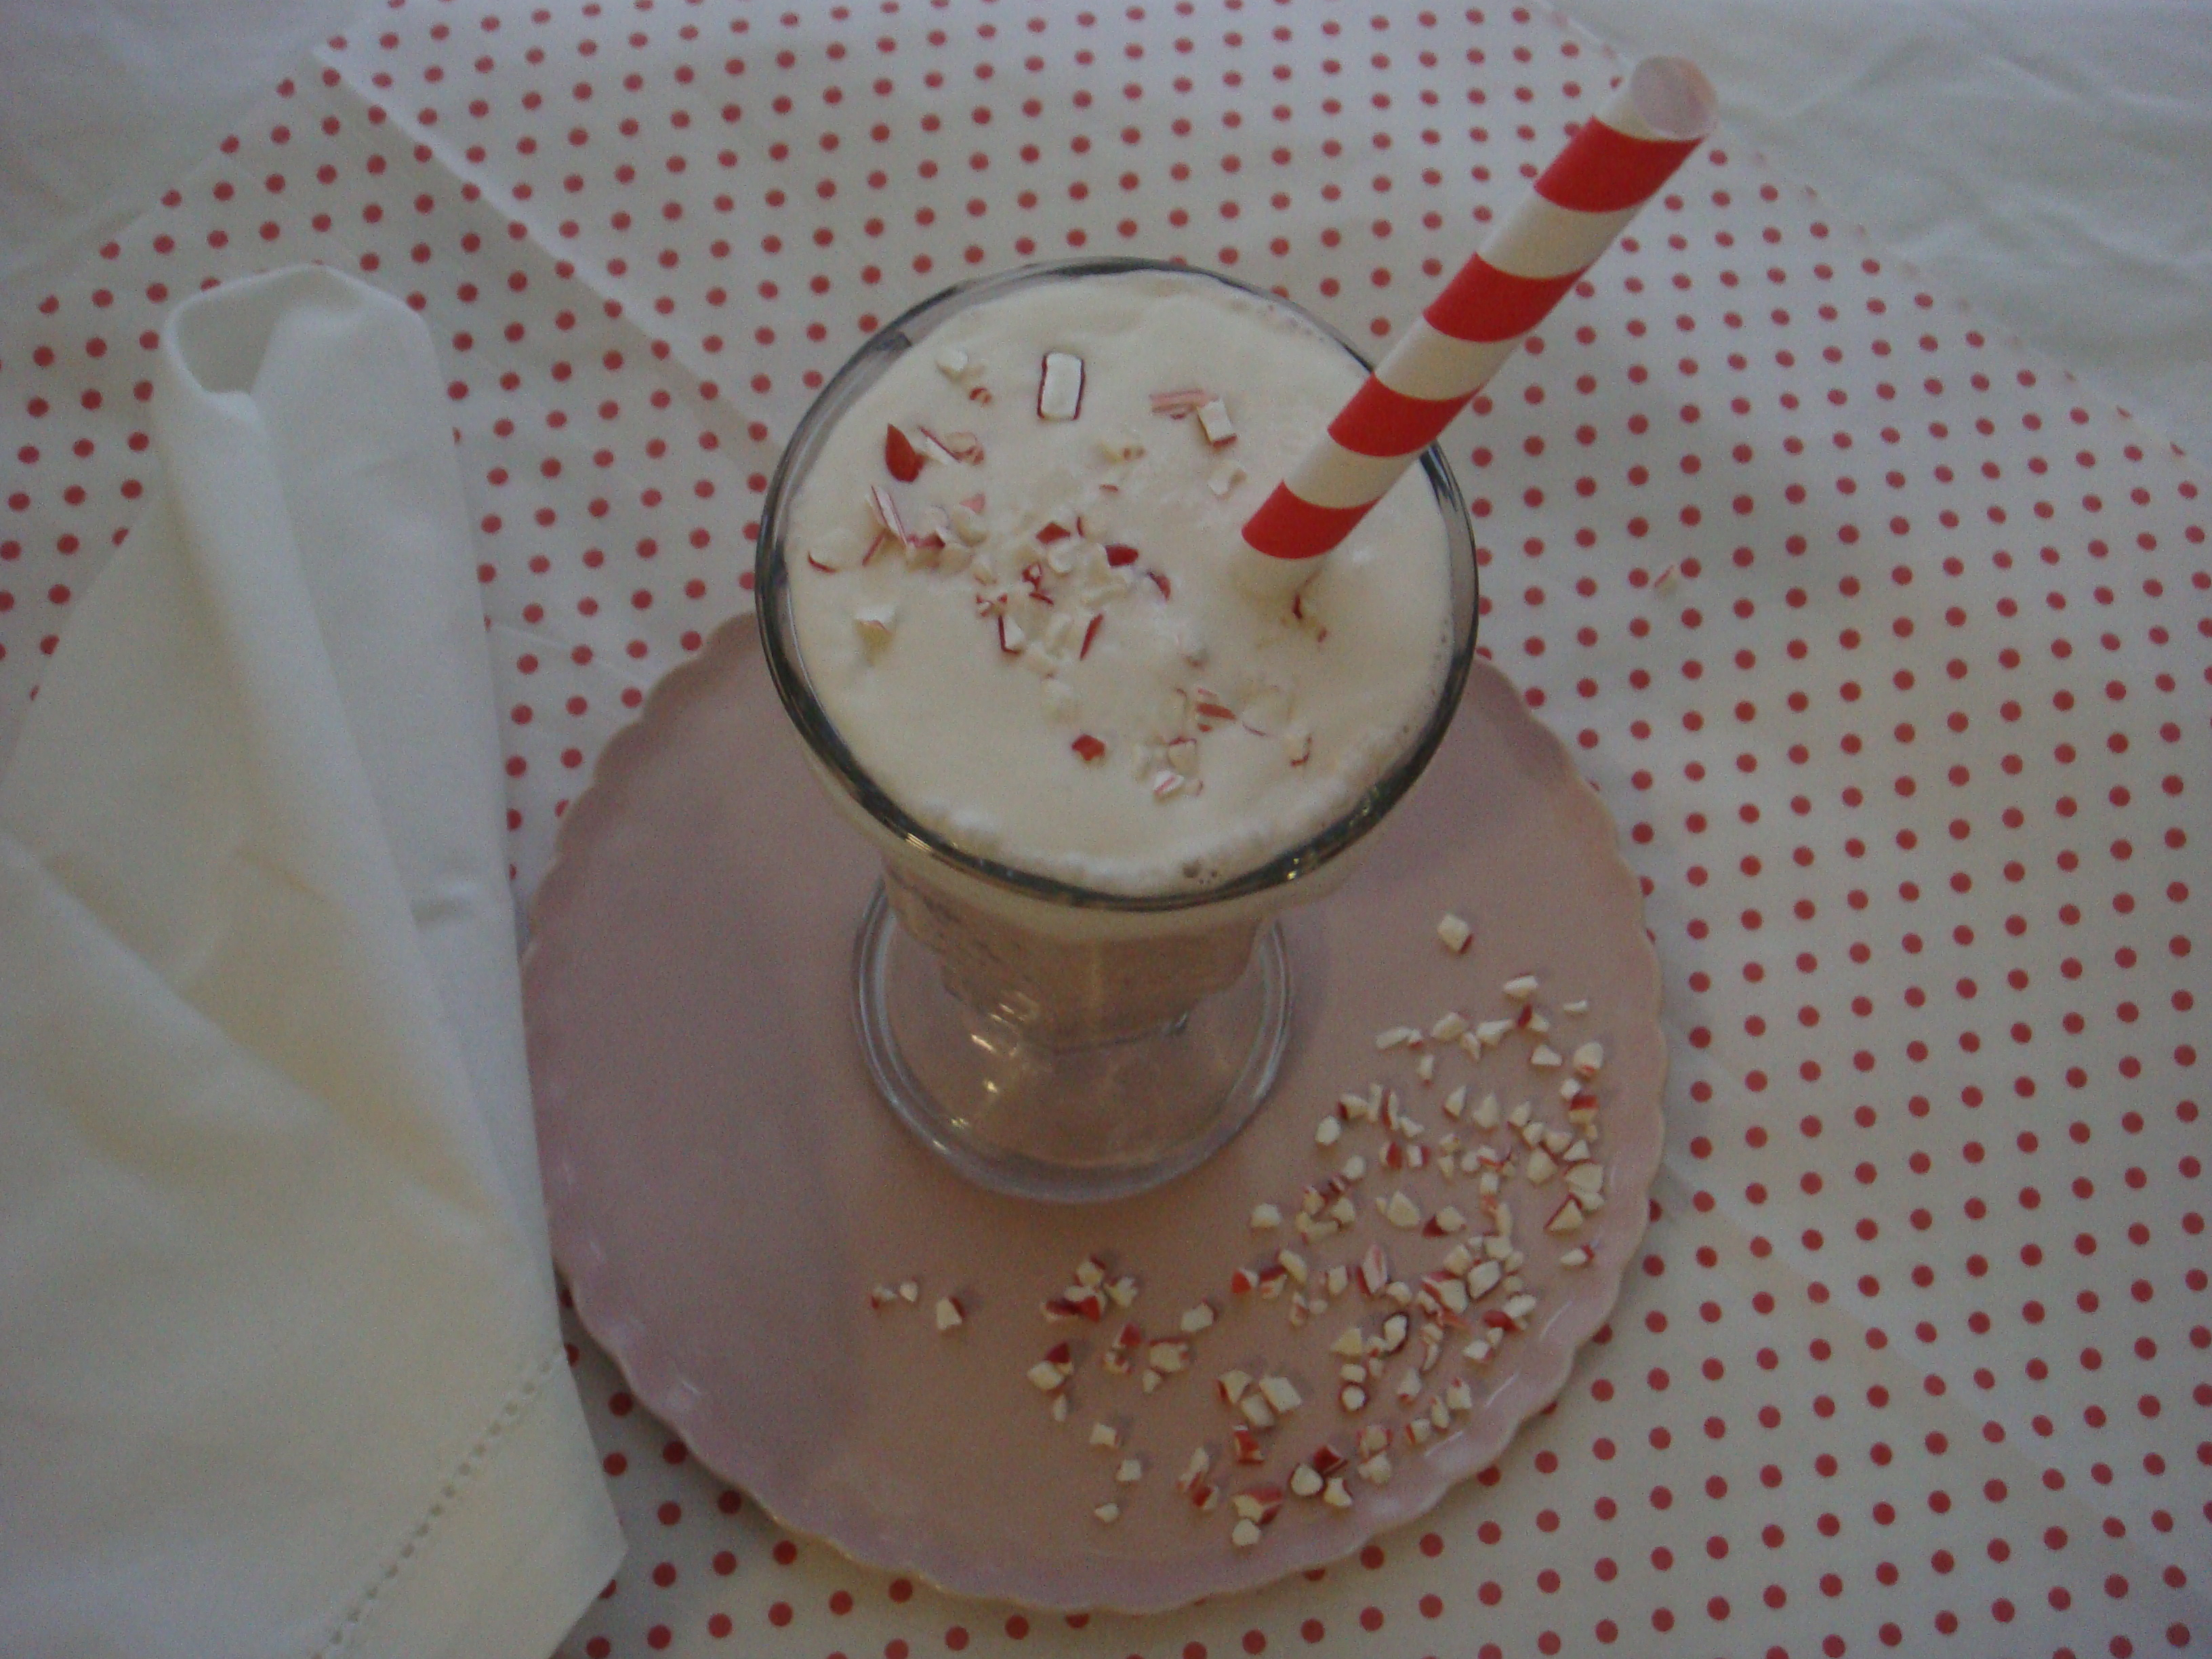 Peppermint Chocolate Chip Shake with whipped cream